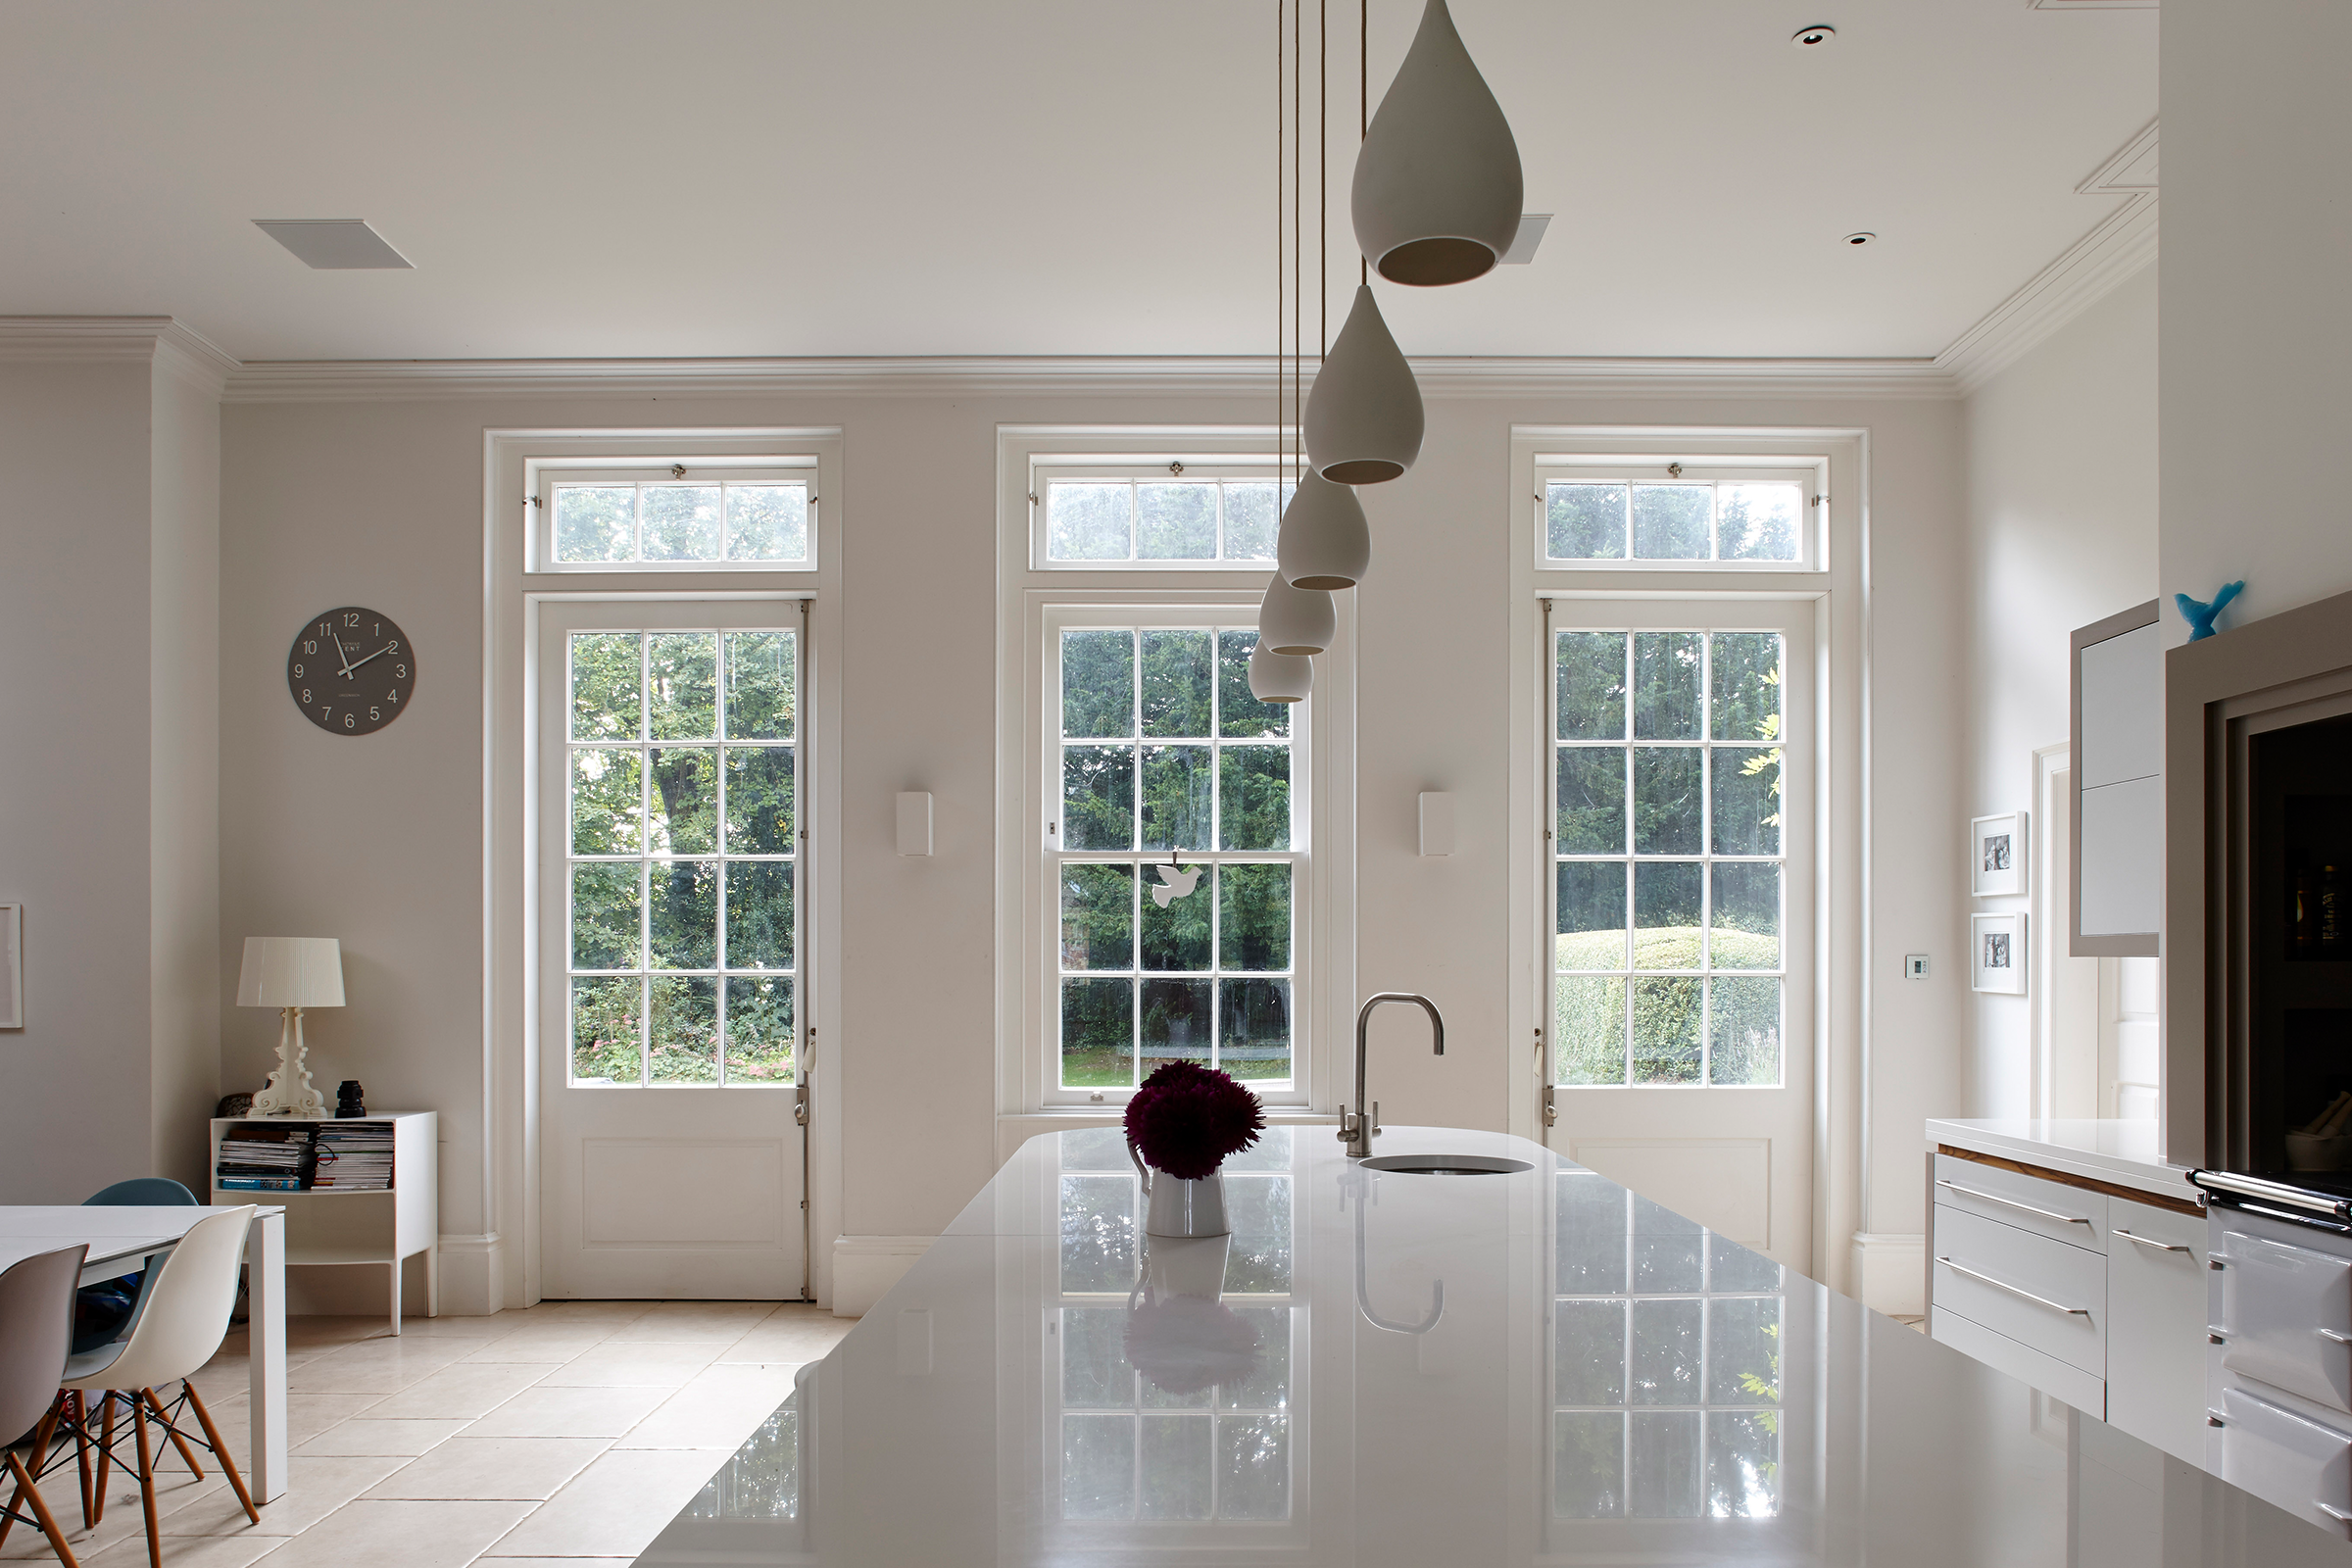 Interior Refurbishment and Extension to a Grade II* Listed Rectory, in Hampshire